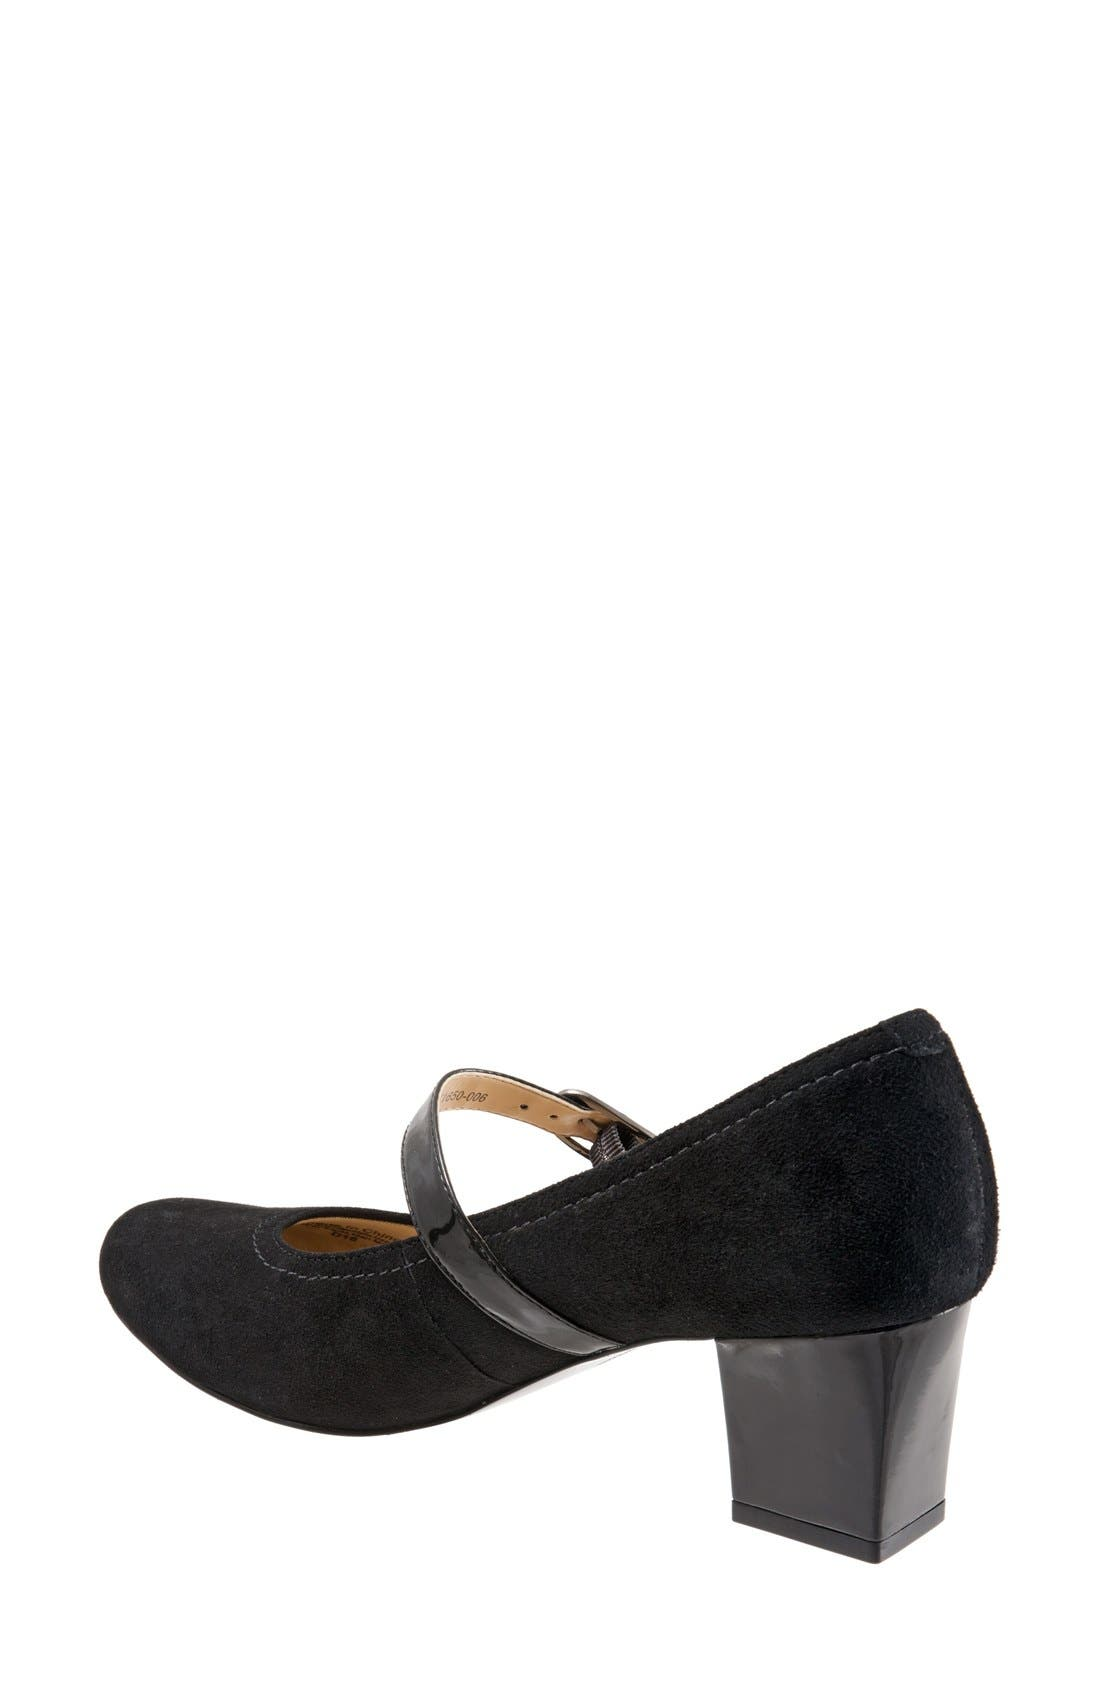 Alternate Image 2  - Trotters 'Candice' Mary Jane Pump (Women)